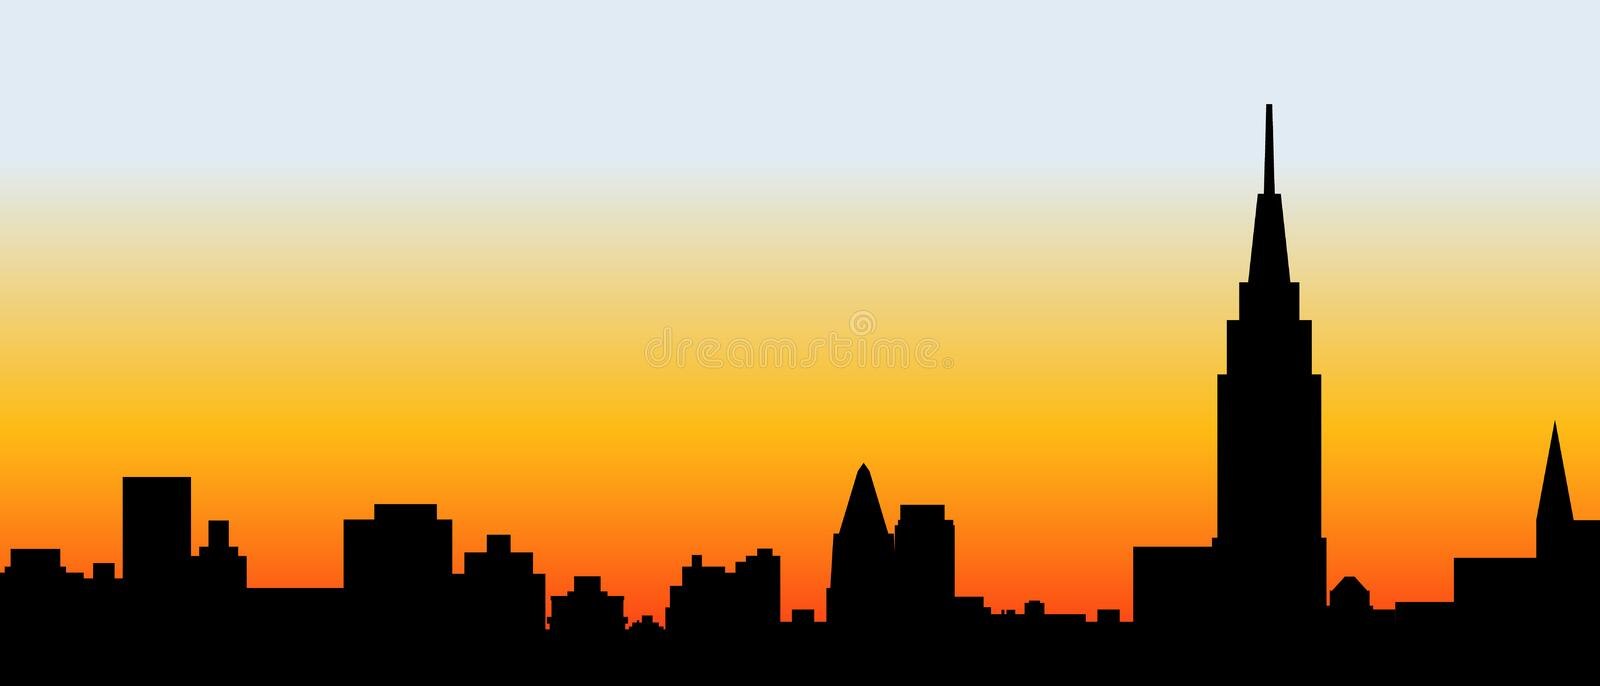 City skyline black silhouette vector illustration. royalty free stock images